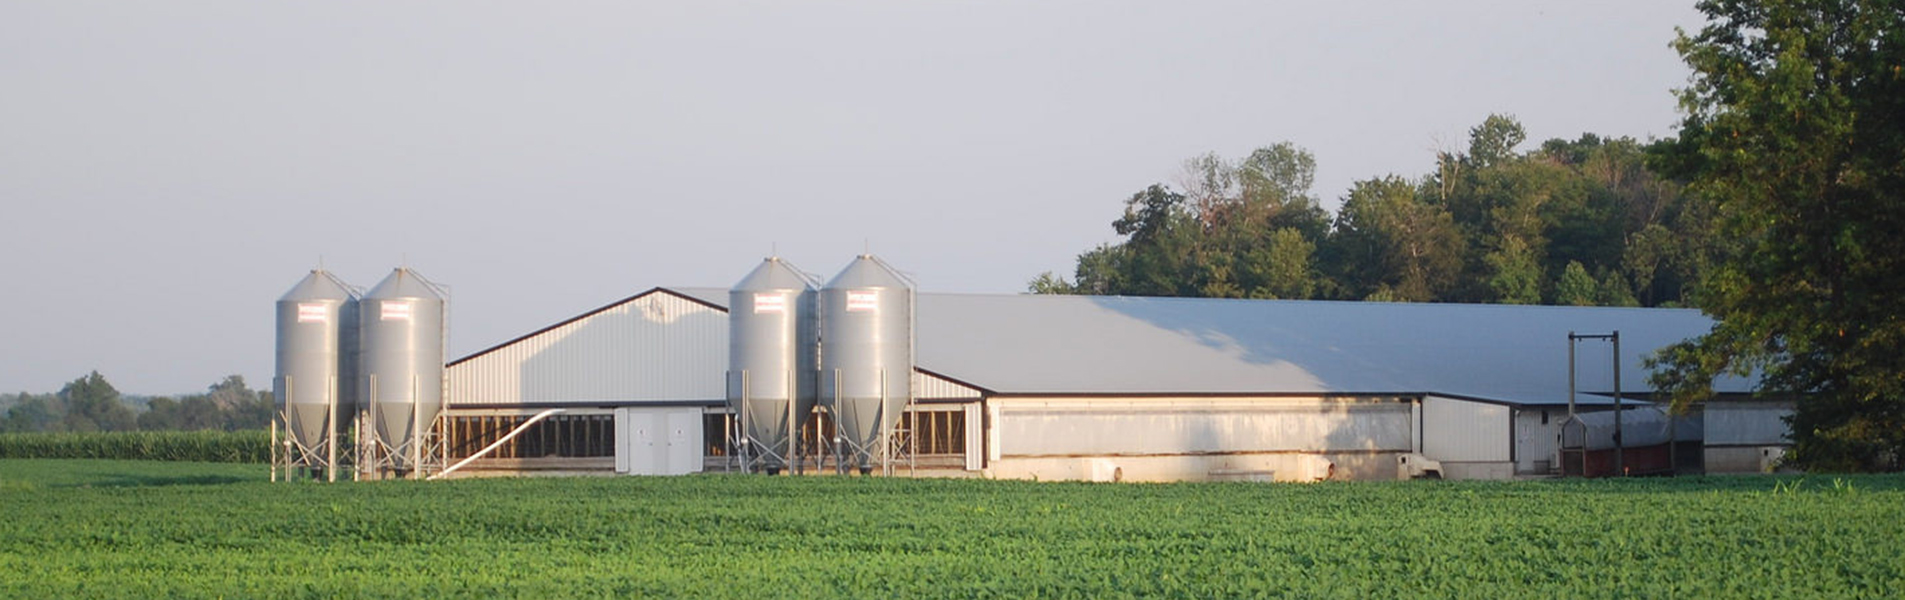 EPA Rule Exempts Farms From Emissions Reporting